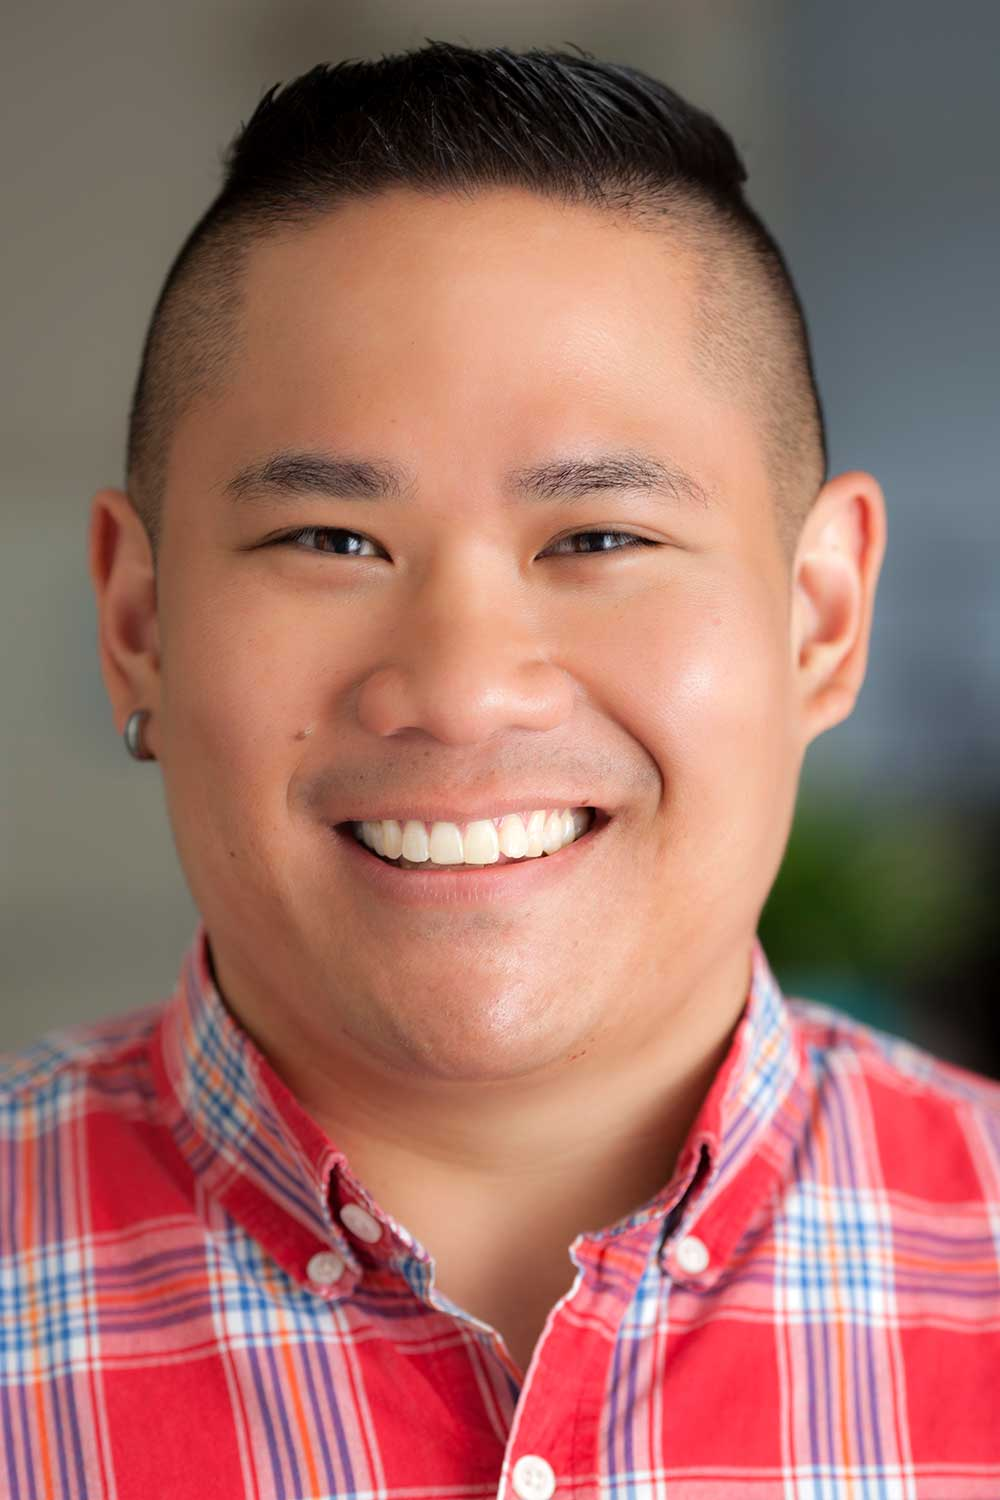 Dennis-Nguyen-chicago-compass-counselor-mens-lgbt-1